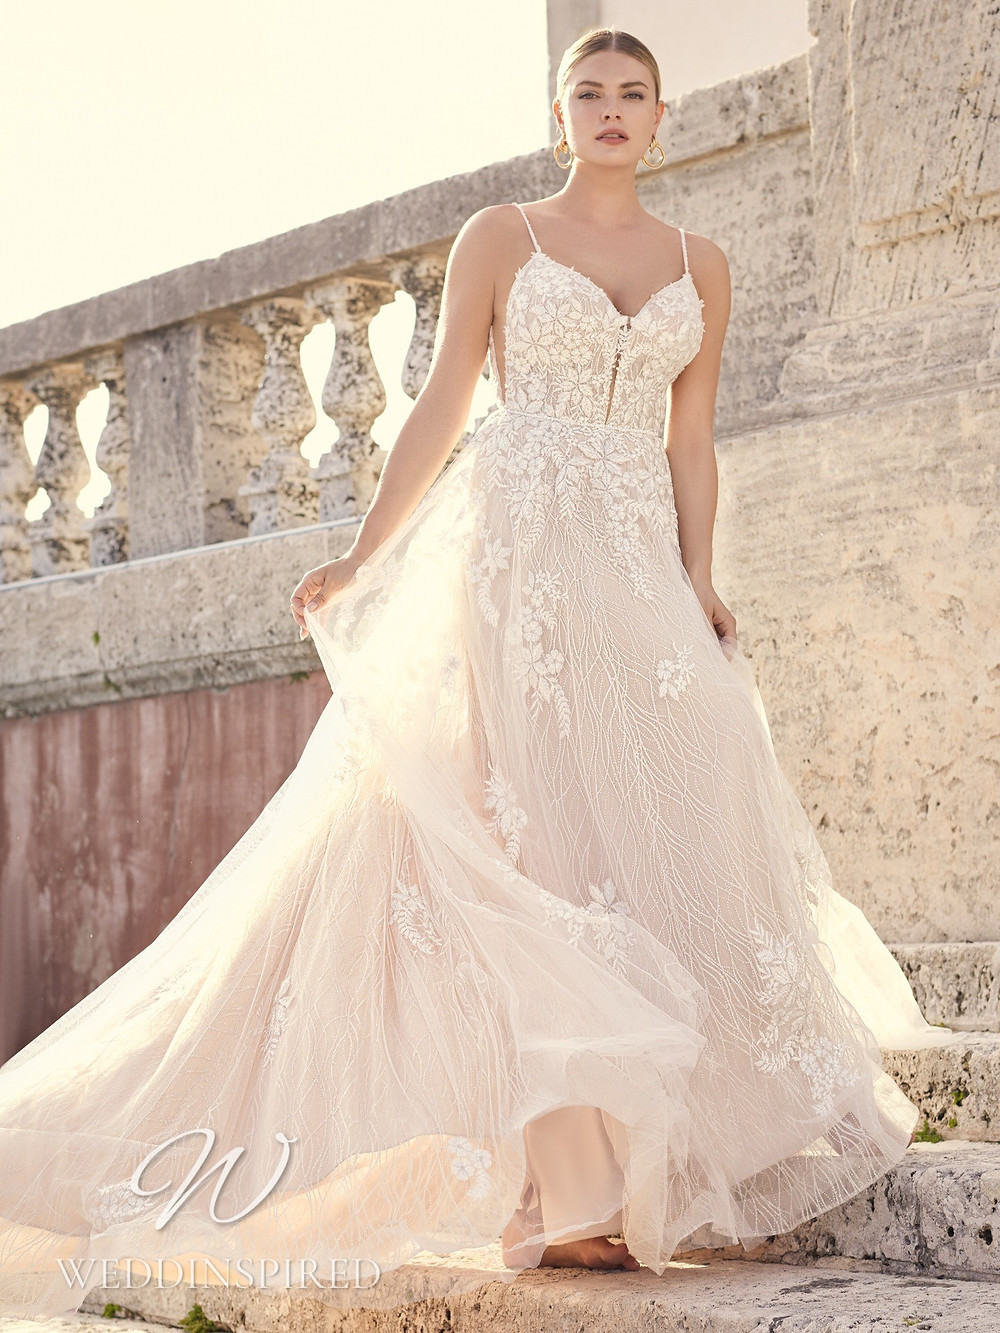 A Sottero & Midgley 2021 blush lace and tulle A-line wedding dress